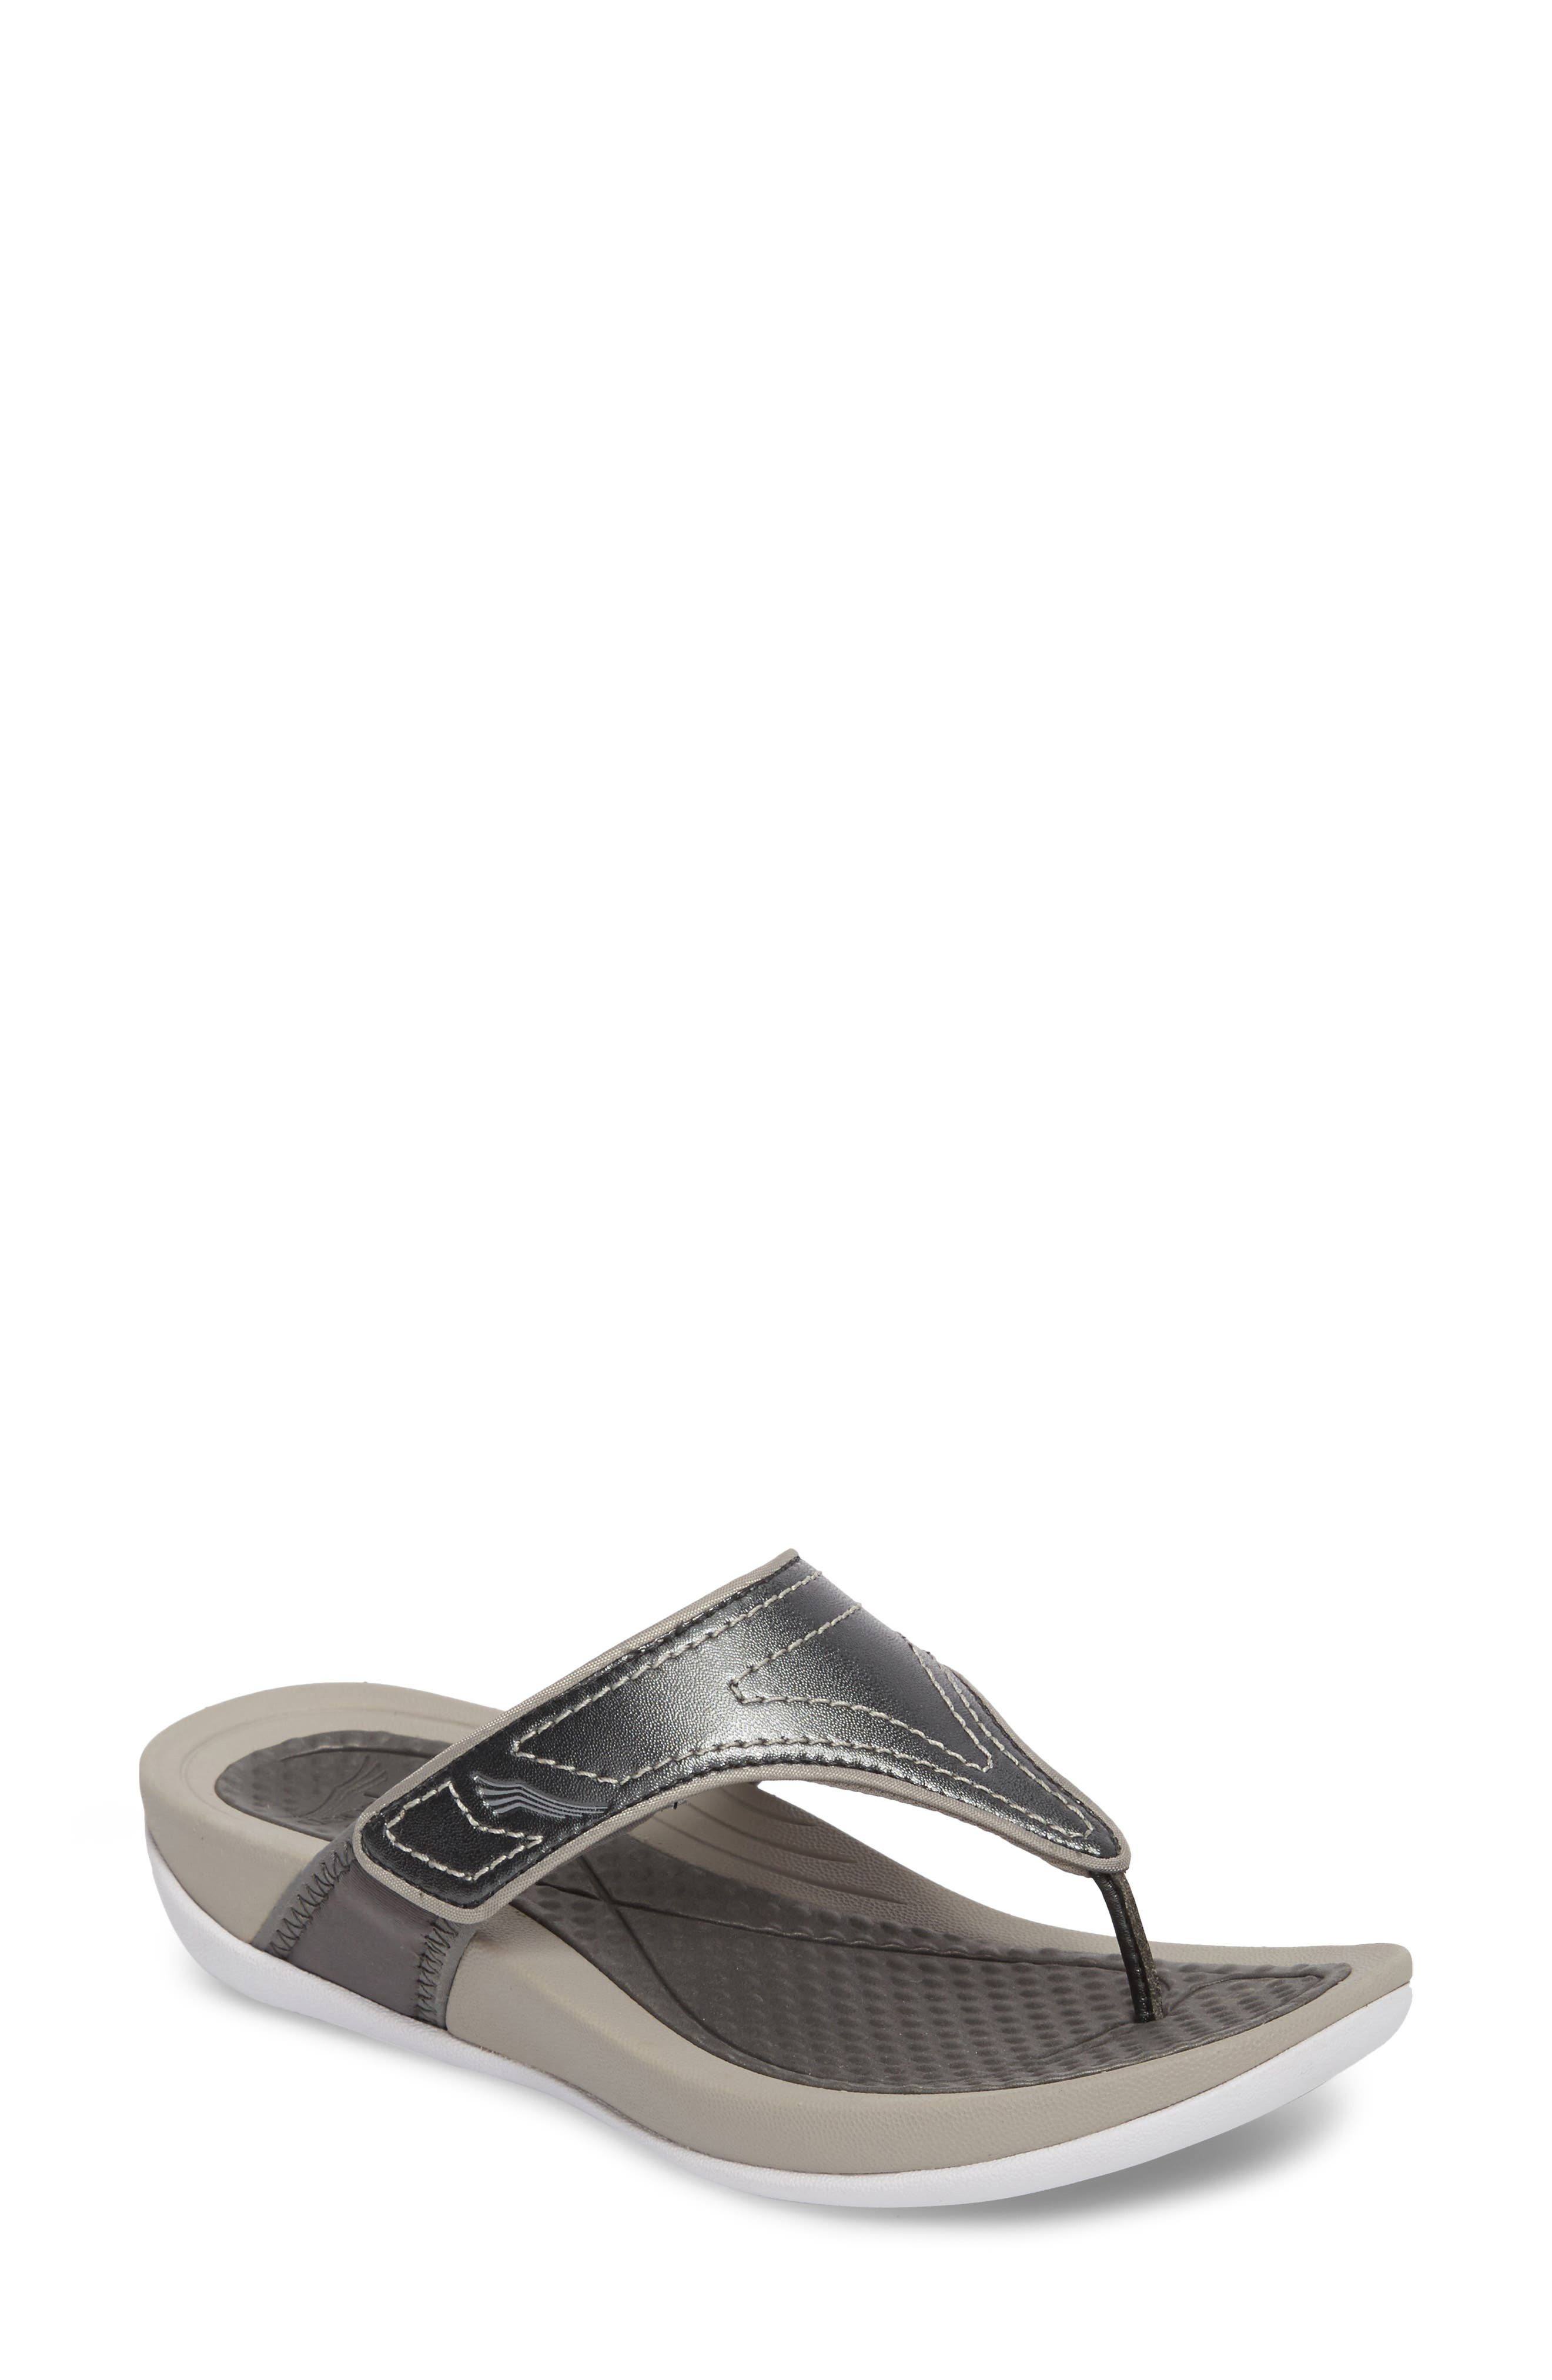 Katy 2 Thong Sandal,                         Main,                         color, PEWTER METALLIC SMOOTH LEATHER